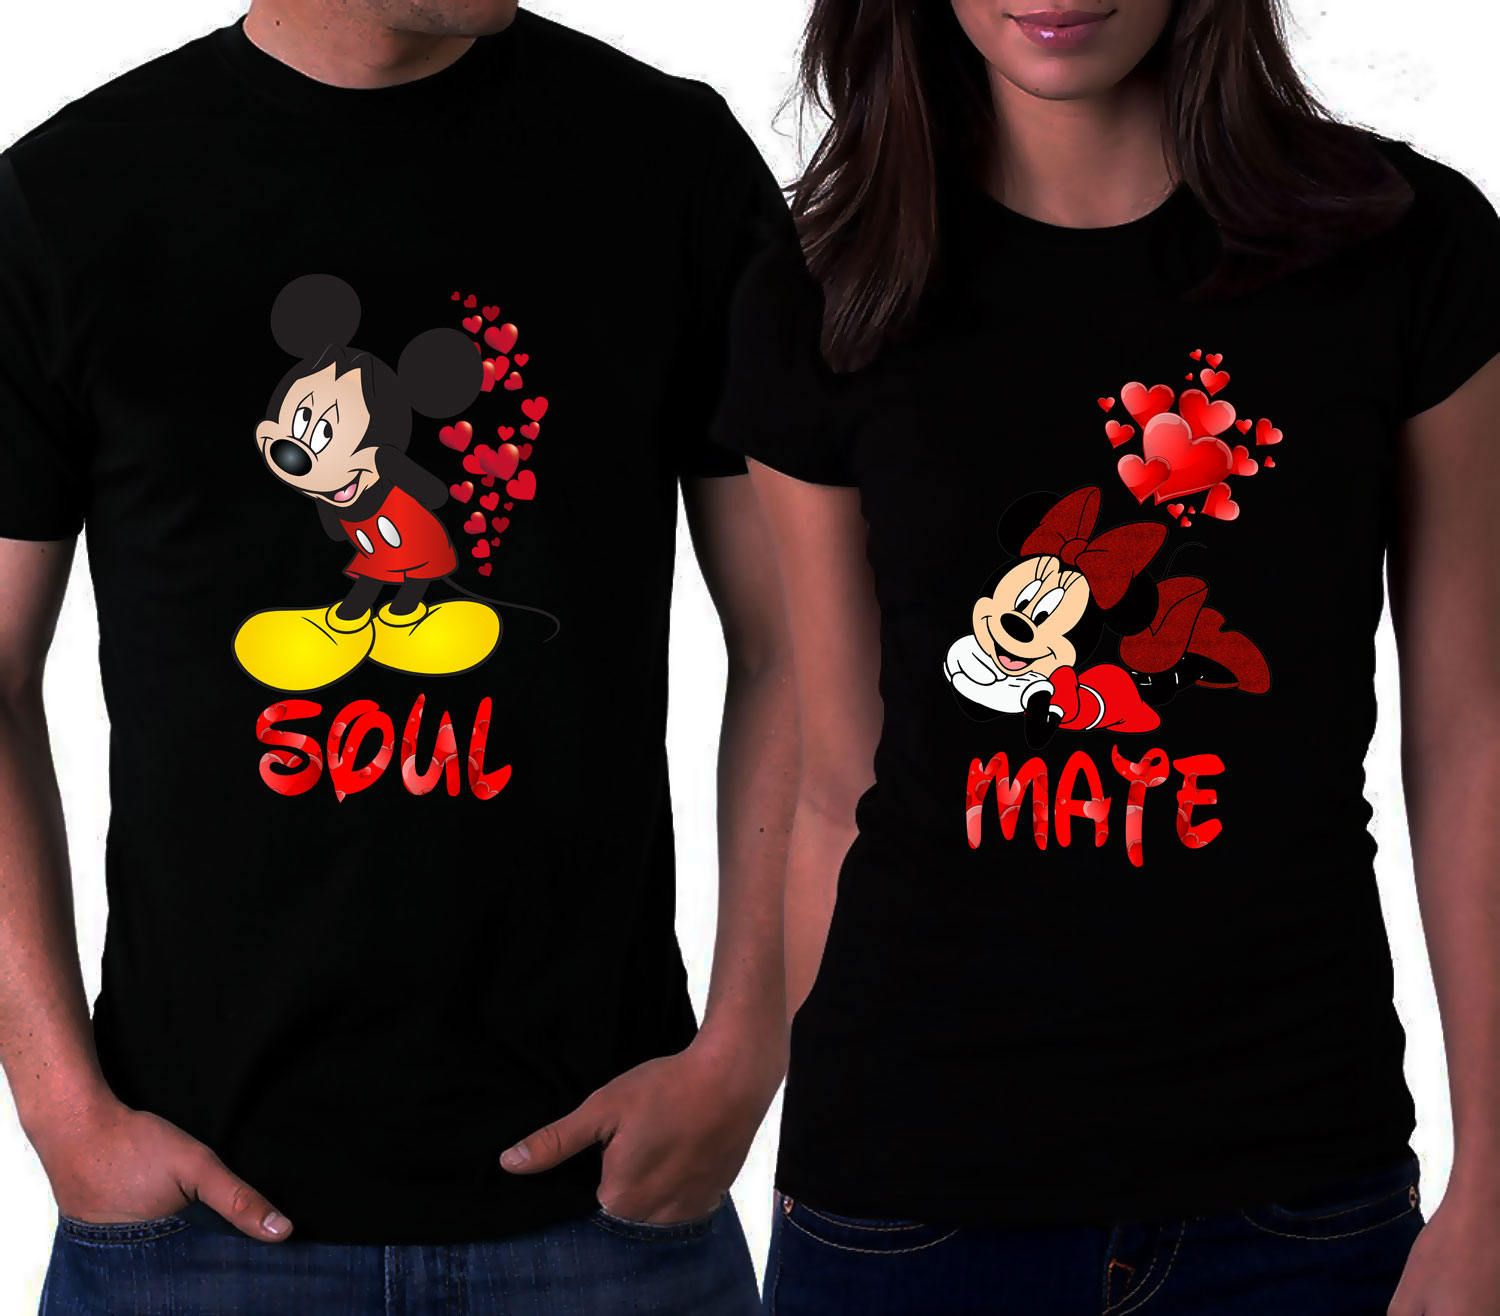 aae588c046 Couple Love T-Shirts Disney T-Shirts Valentine's Day Shirts Soul Mate Shirt  Love T-Shirts Mickey Mouse Shirt Minnie Mouse Shirt Couple Tees by ...